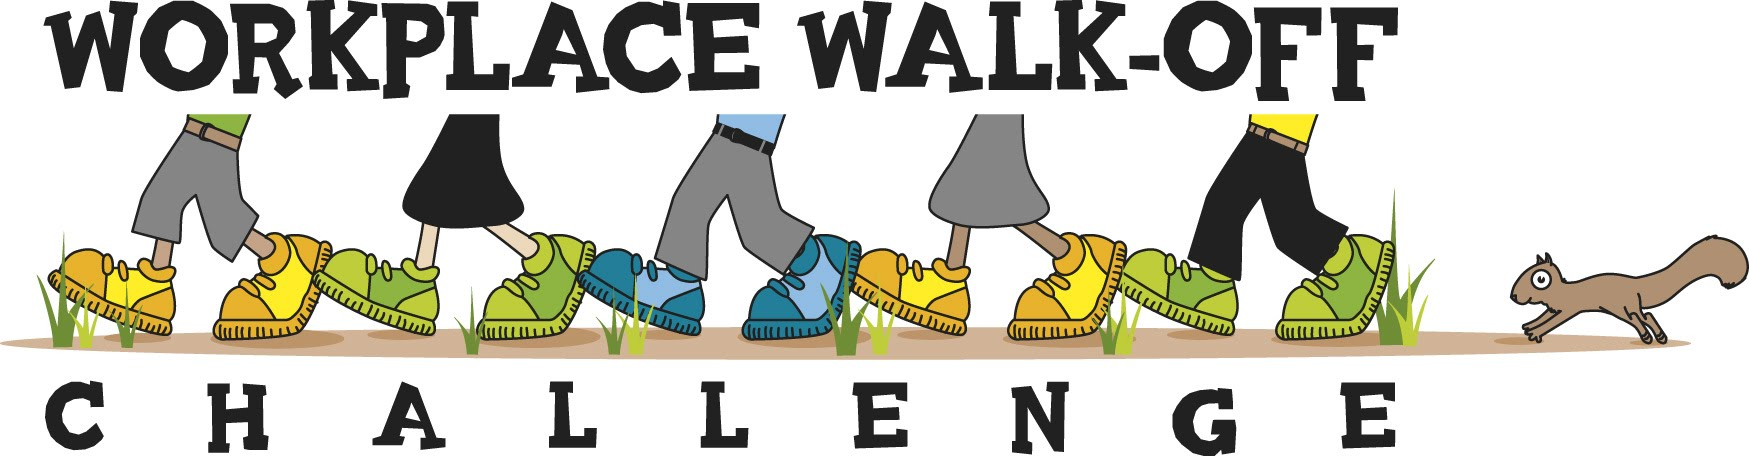 Workplace walkoff . Clipart walking walking challenge